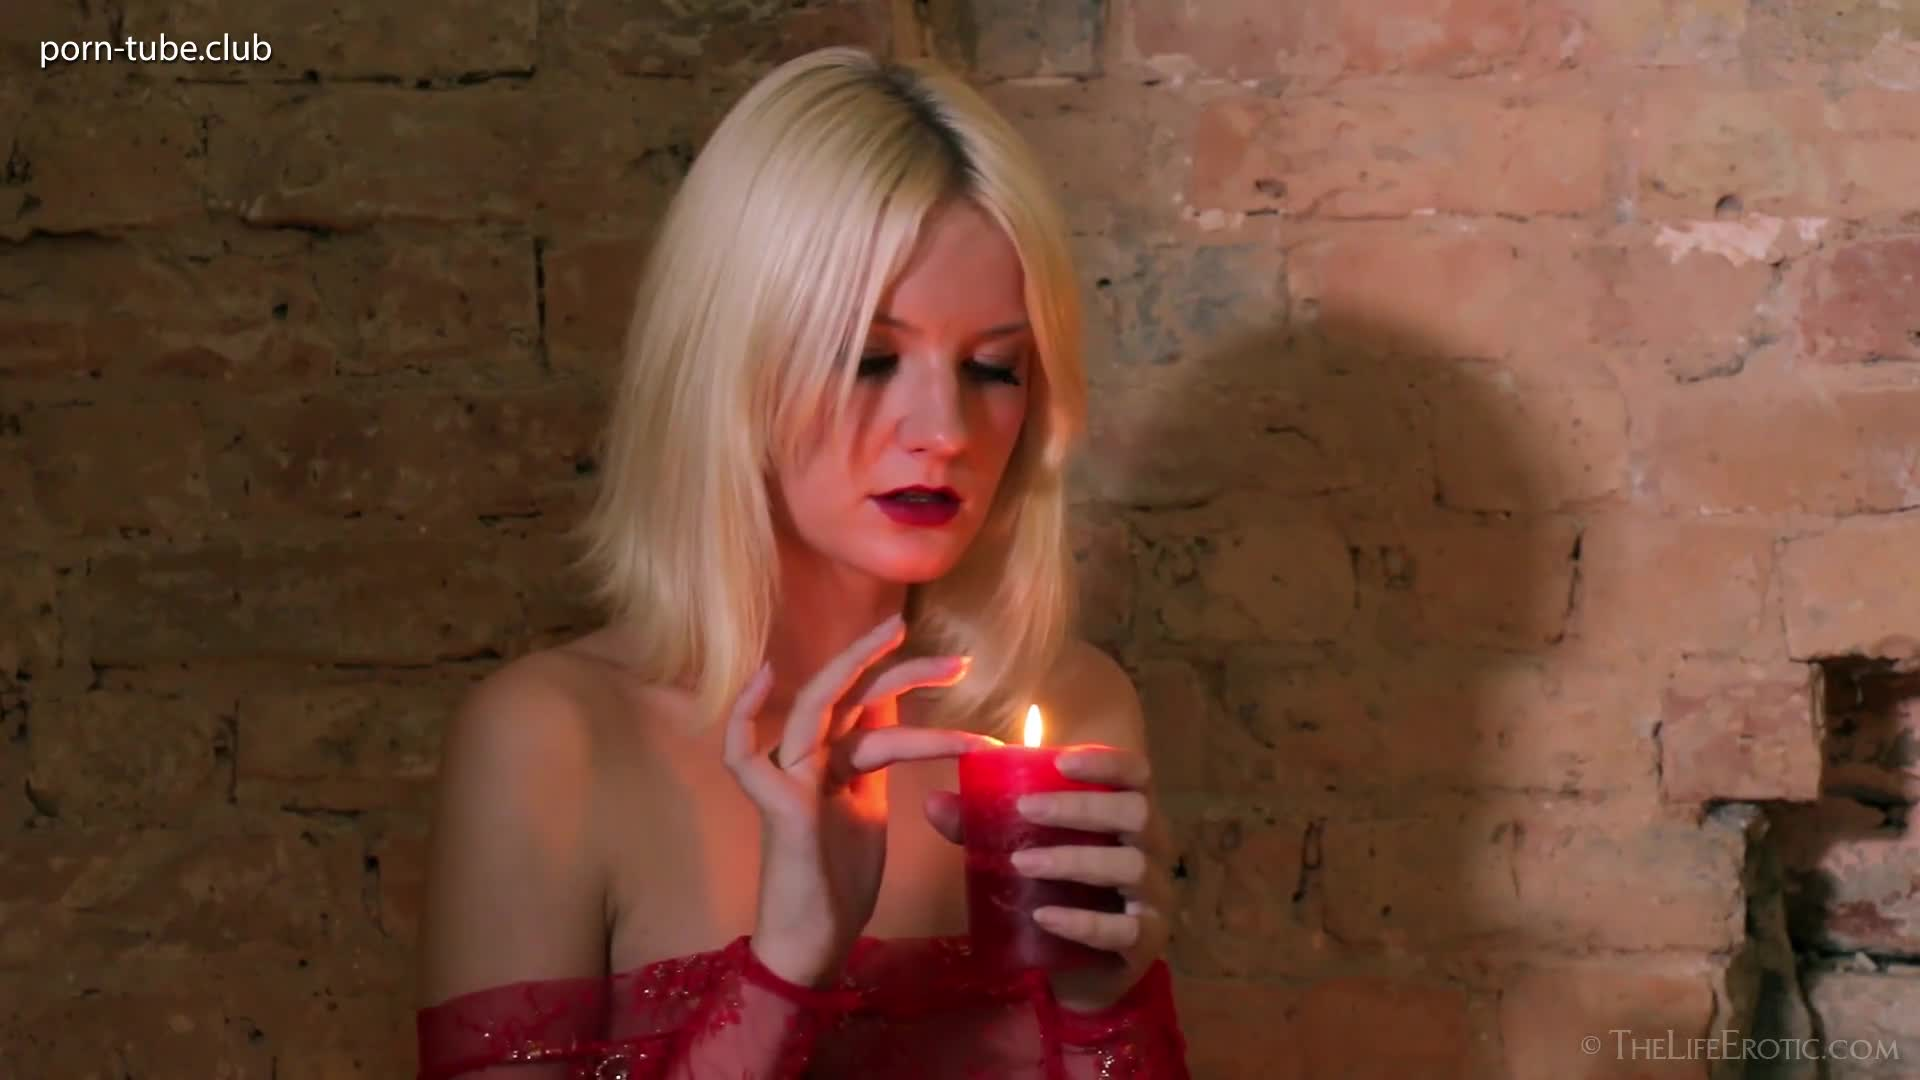 TheLifeErotic 16.10.23 Bree Haze Lady In Red